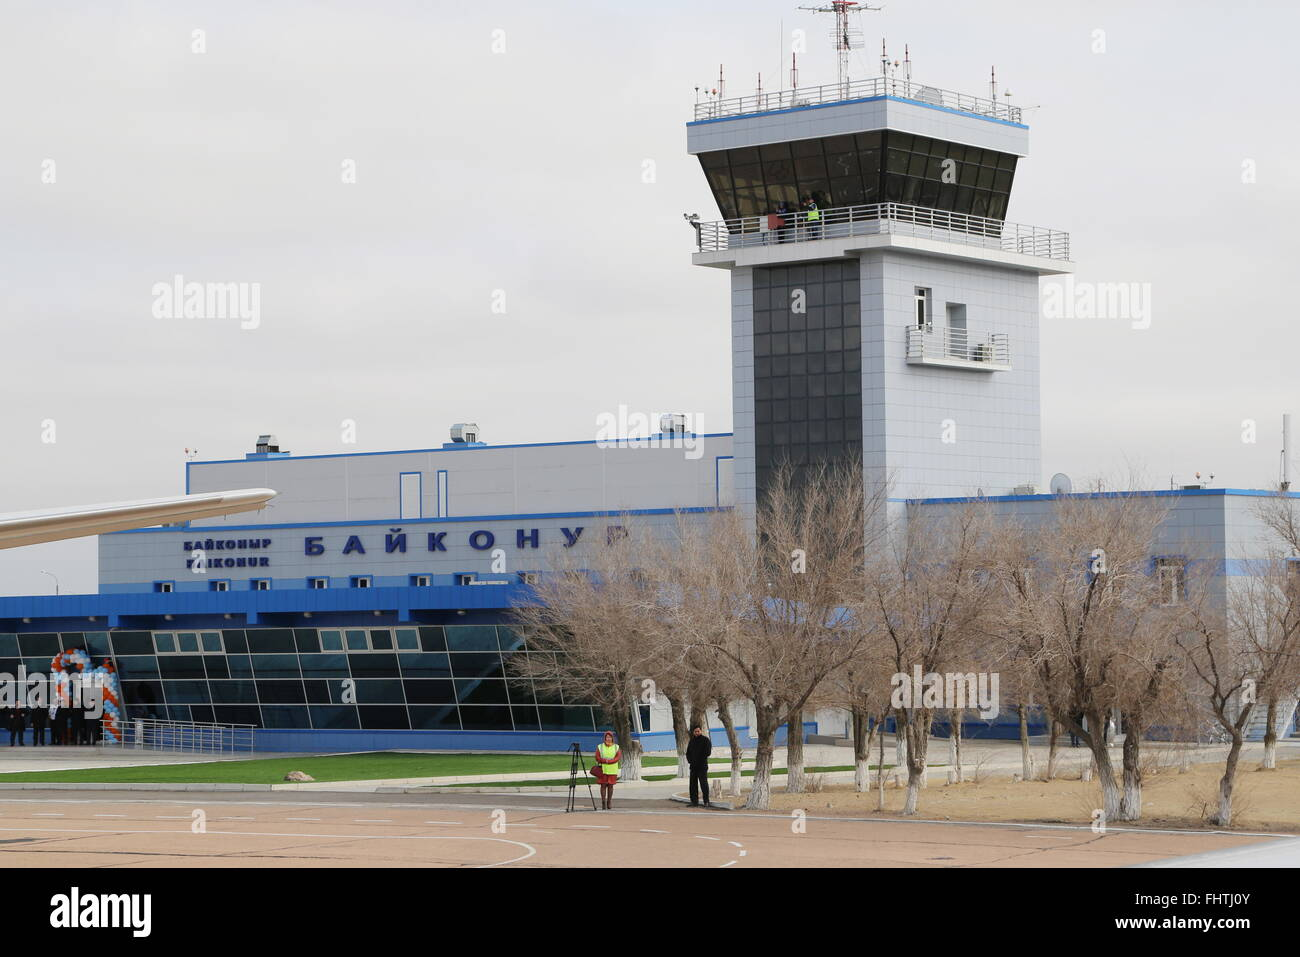 Kyzylorda Region, Kazakhstan. 26th Feb, 2016. A view of the Krainiy Airport that serves as the gateway to Baikonur - Stock Image